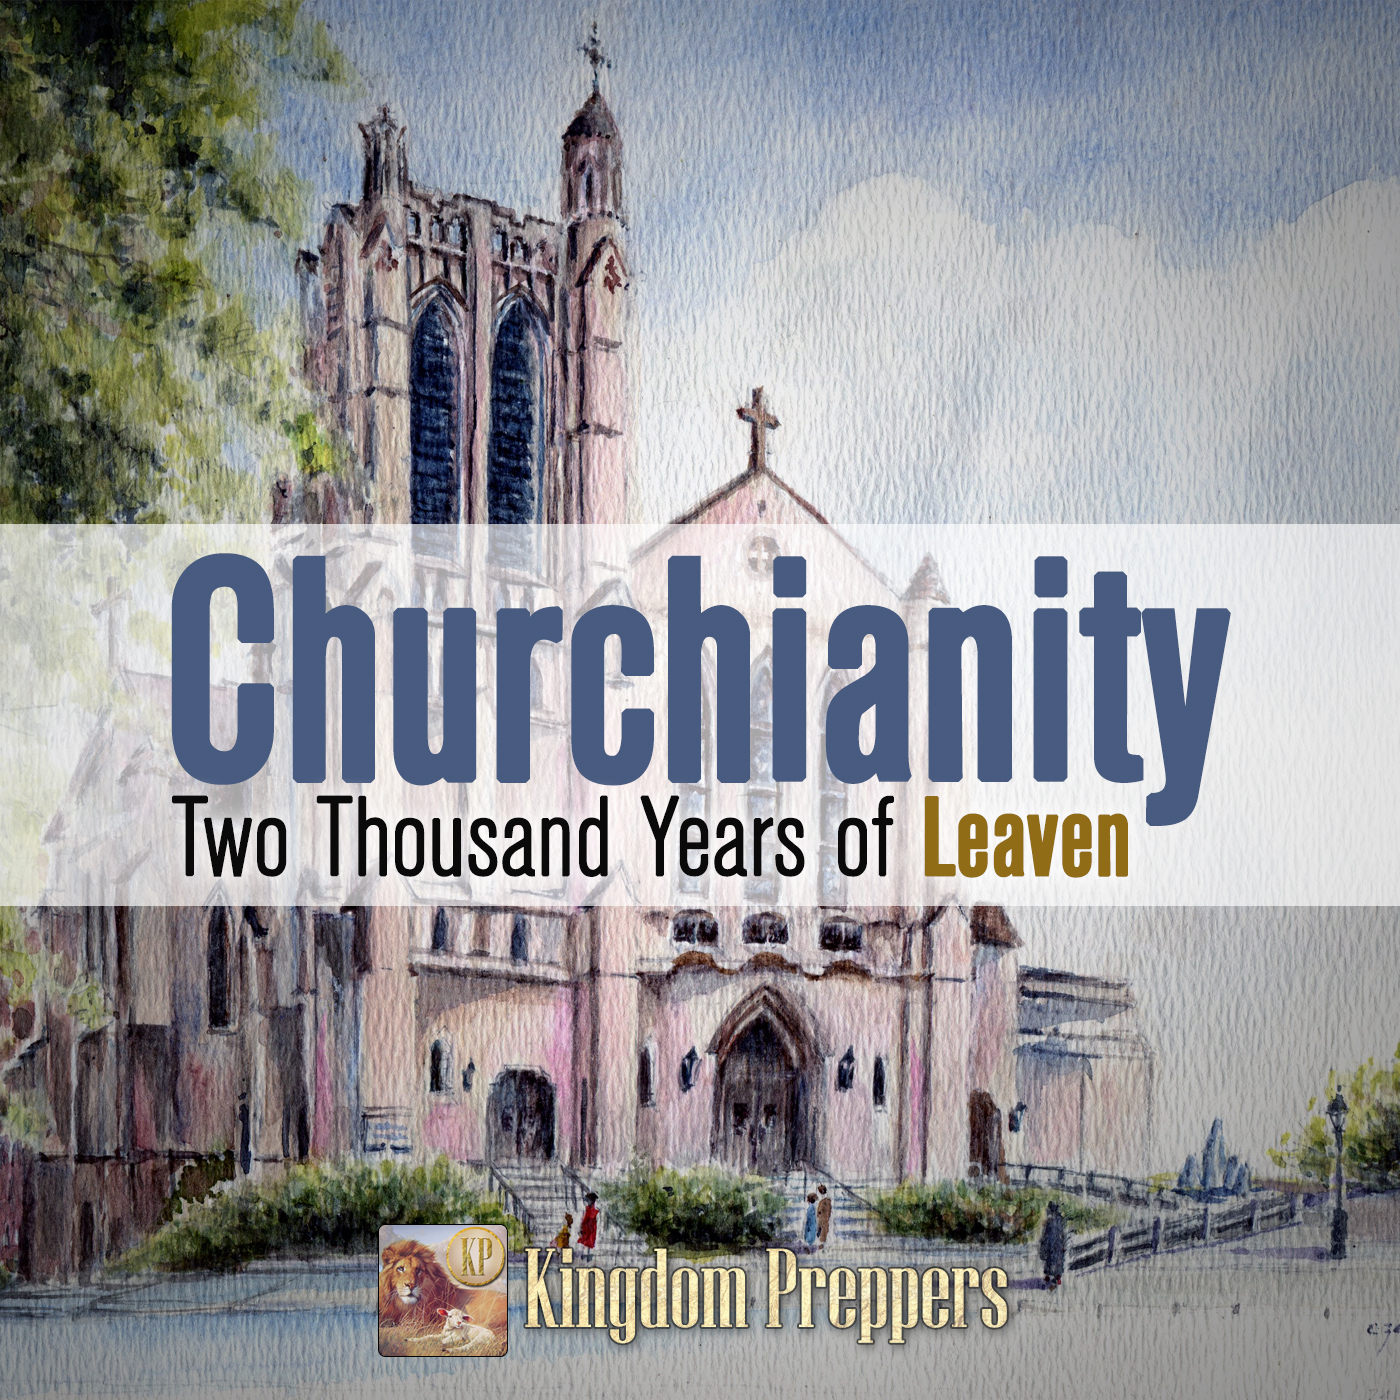 Churchianity-cover.jpg